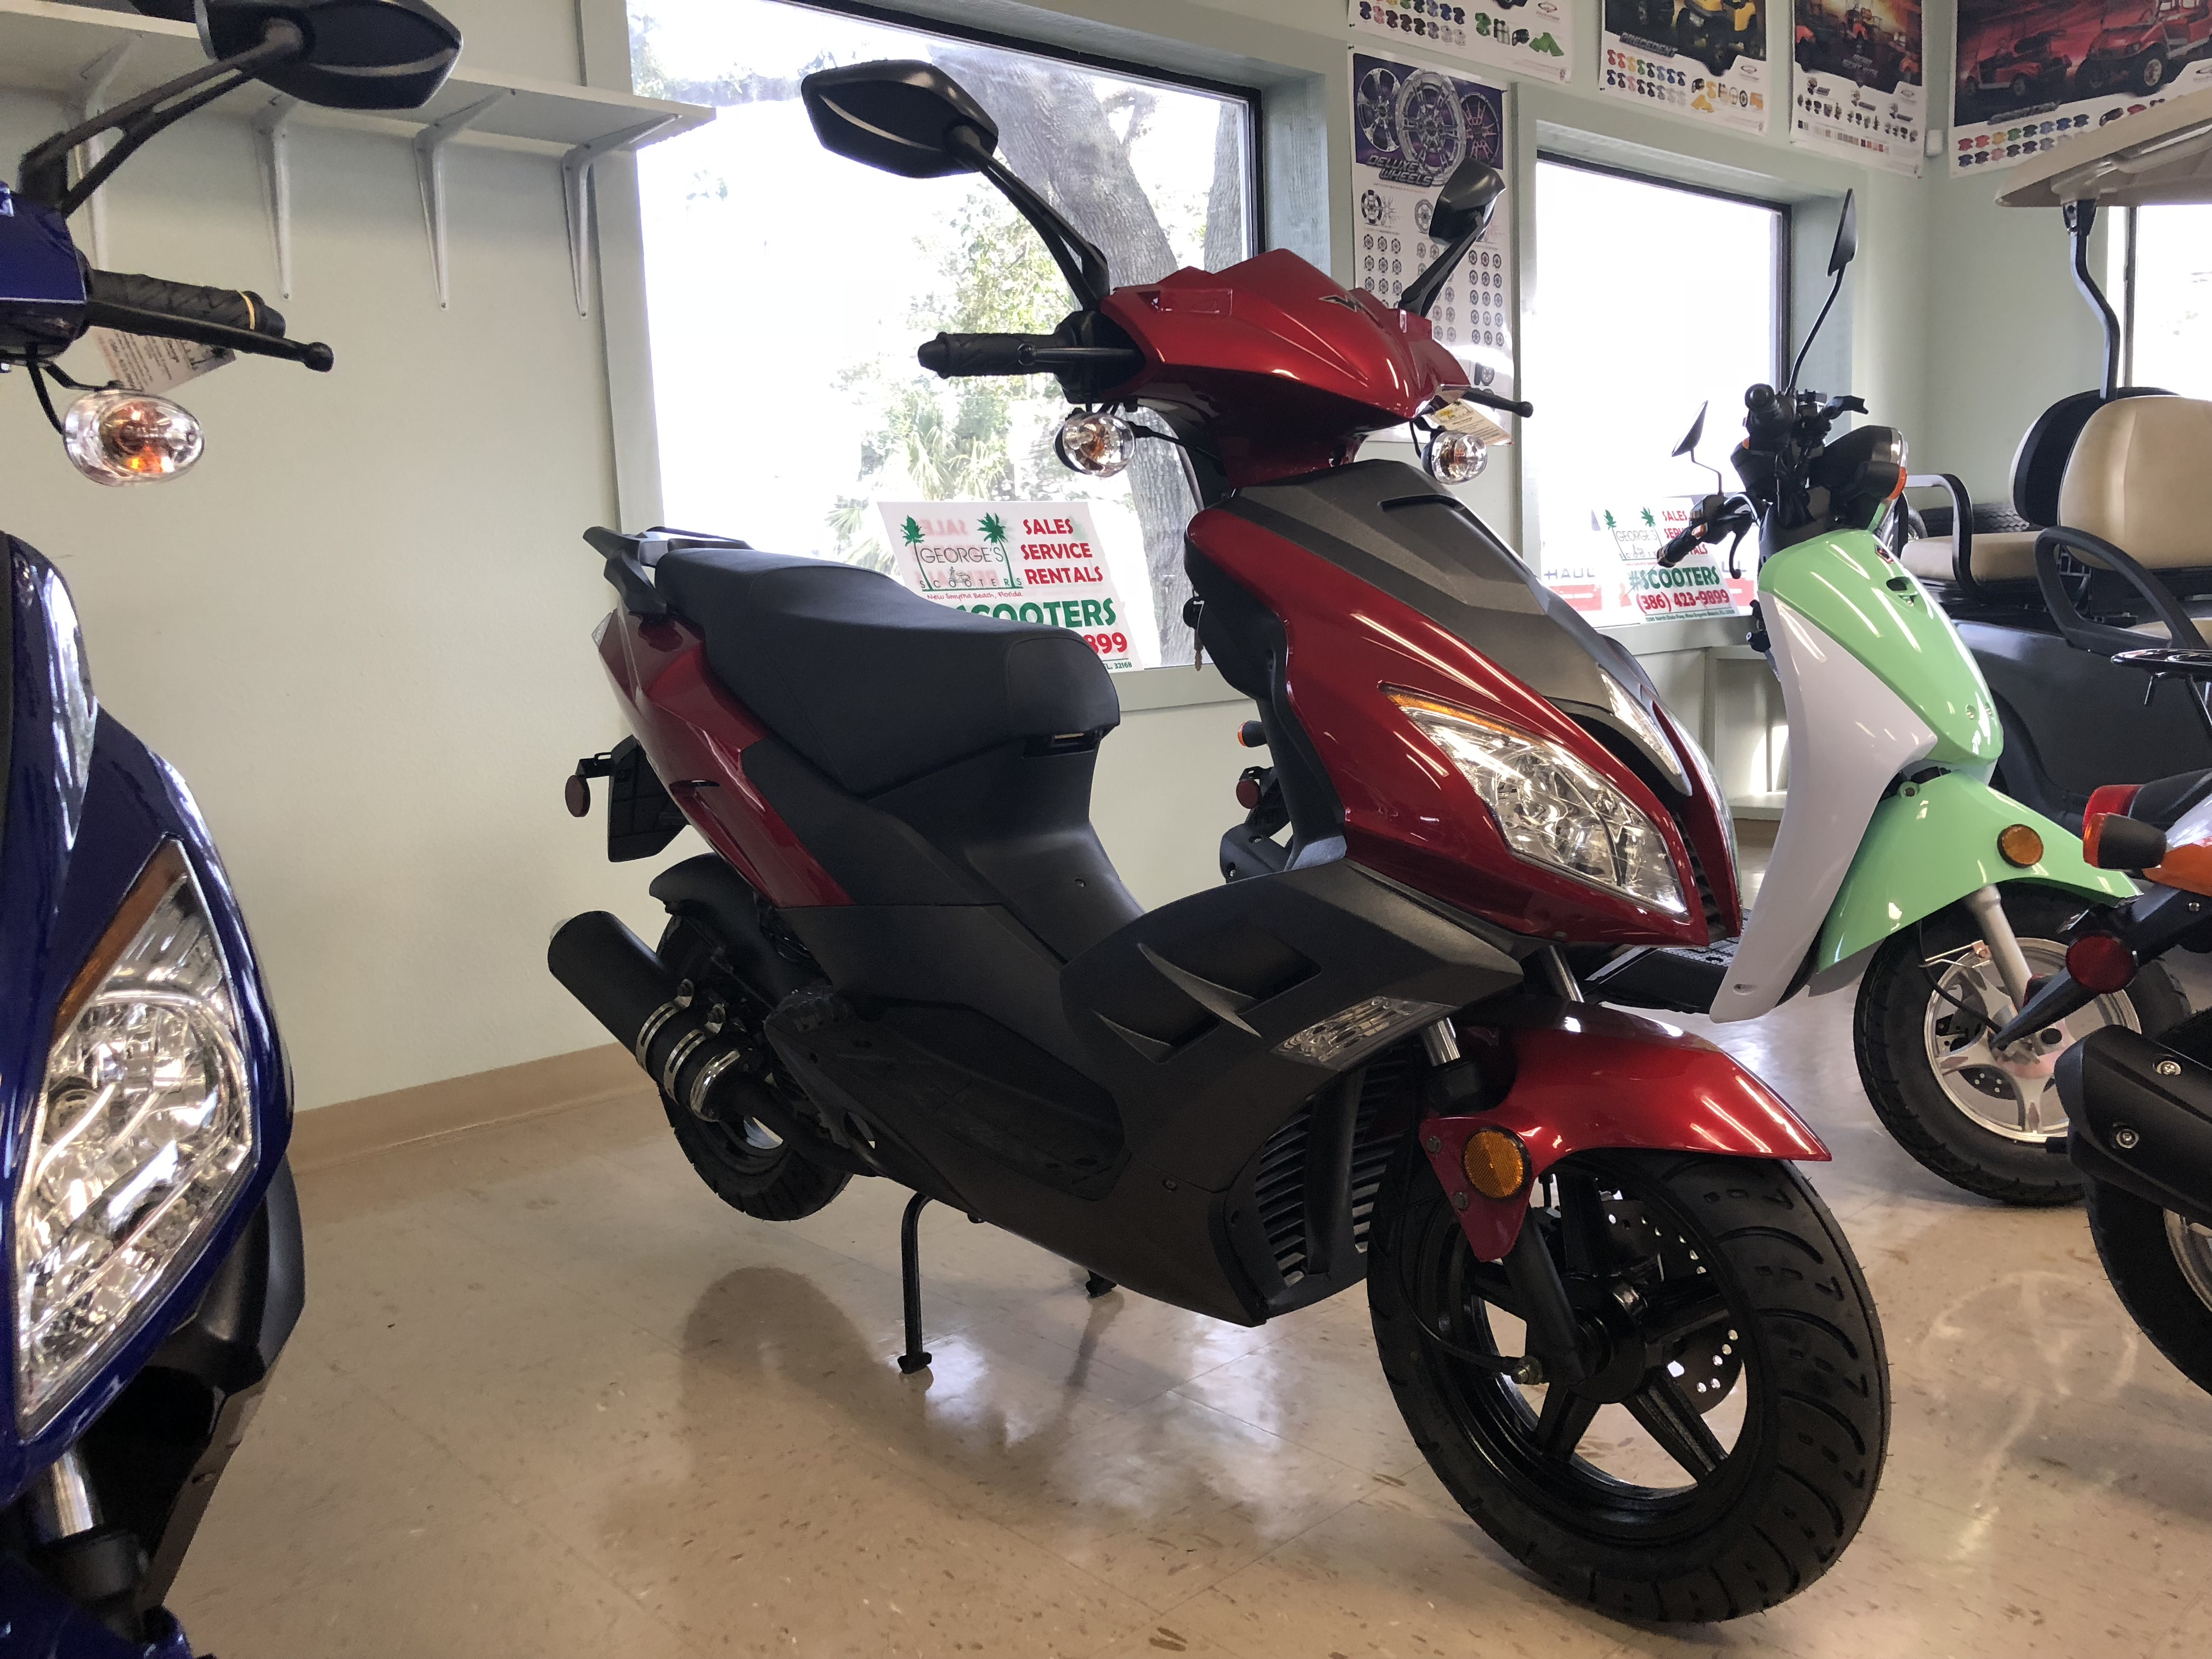 Under 50cc Scooters *Drivers License Required*